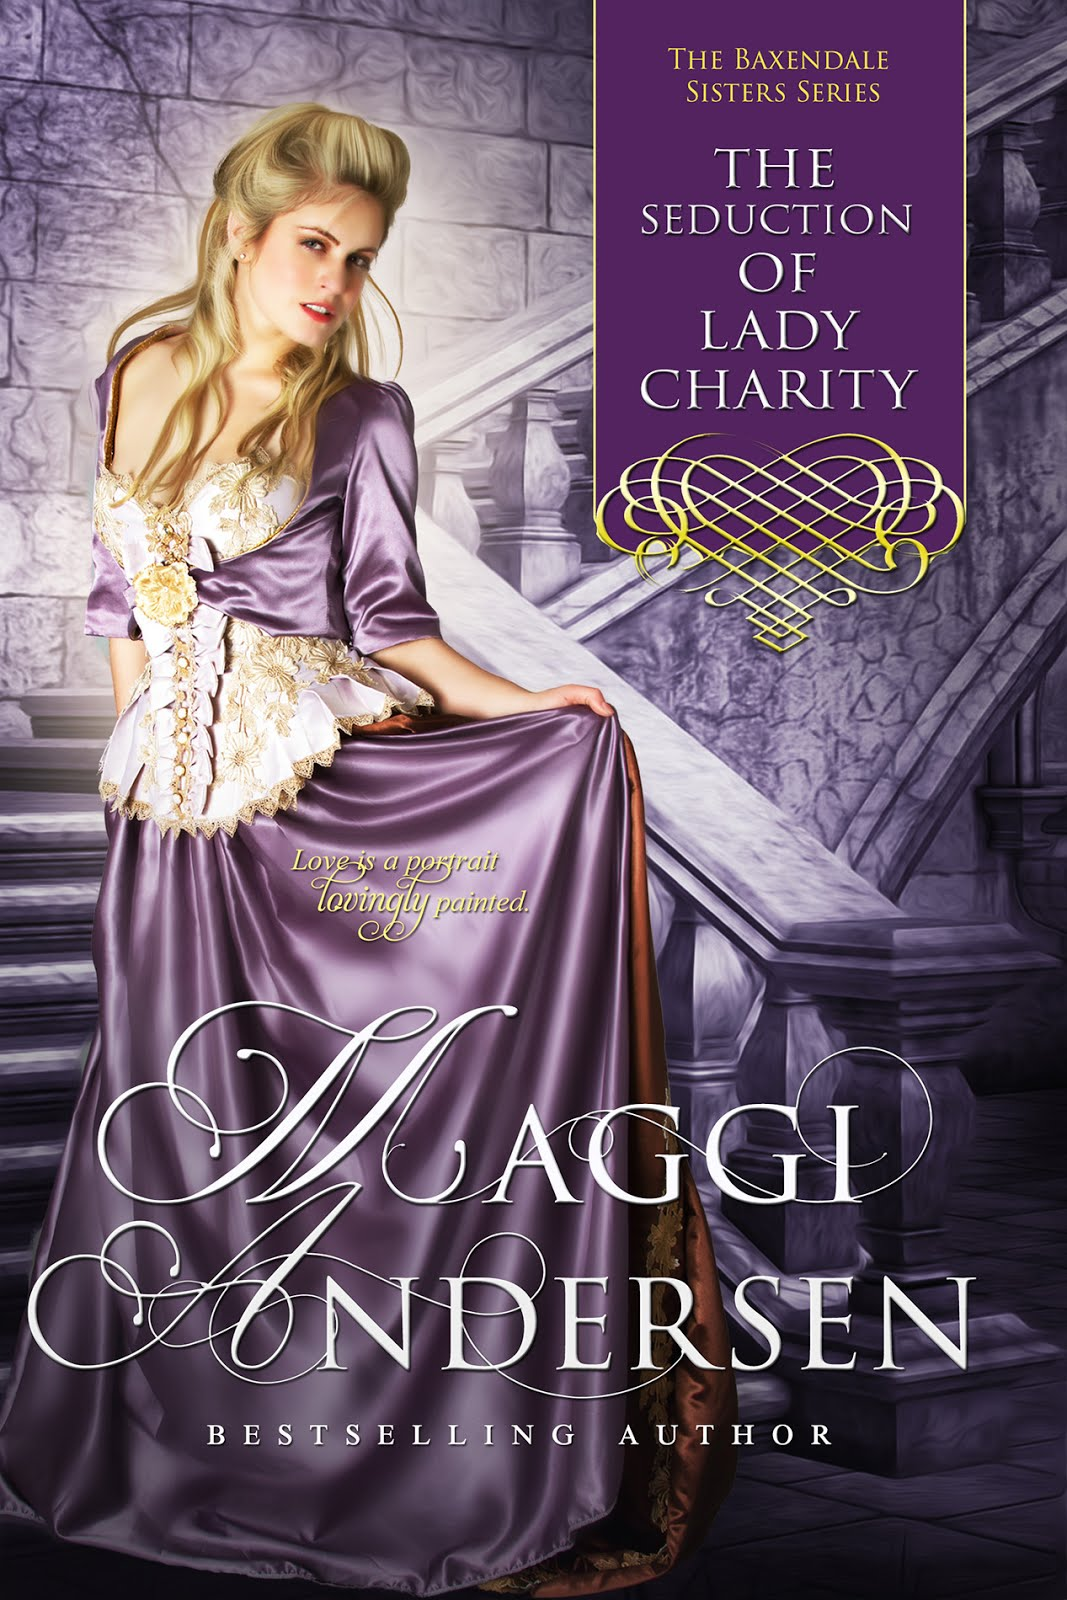 THE SEDUCTION OF LADY CHARITY